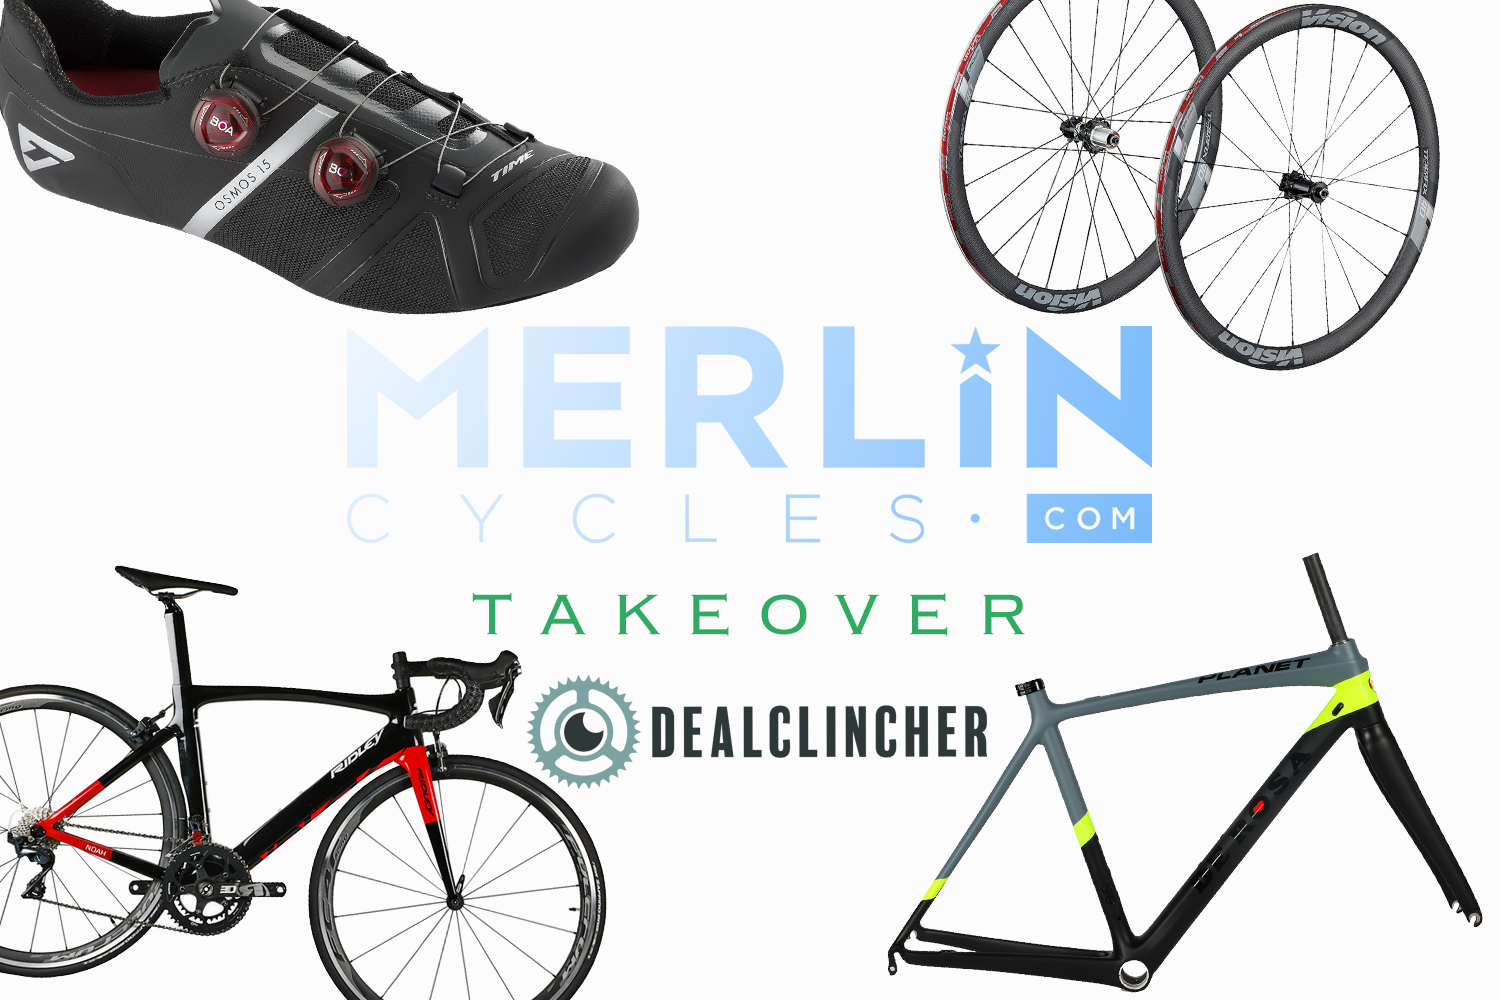 The Week's Biggest Black Friday Cycling Deals   Cycling deals from Dealclincher